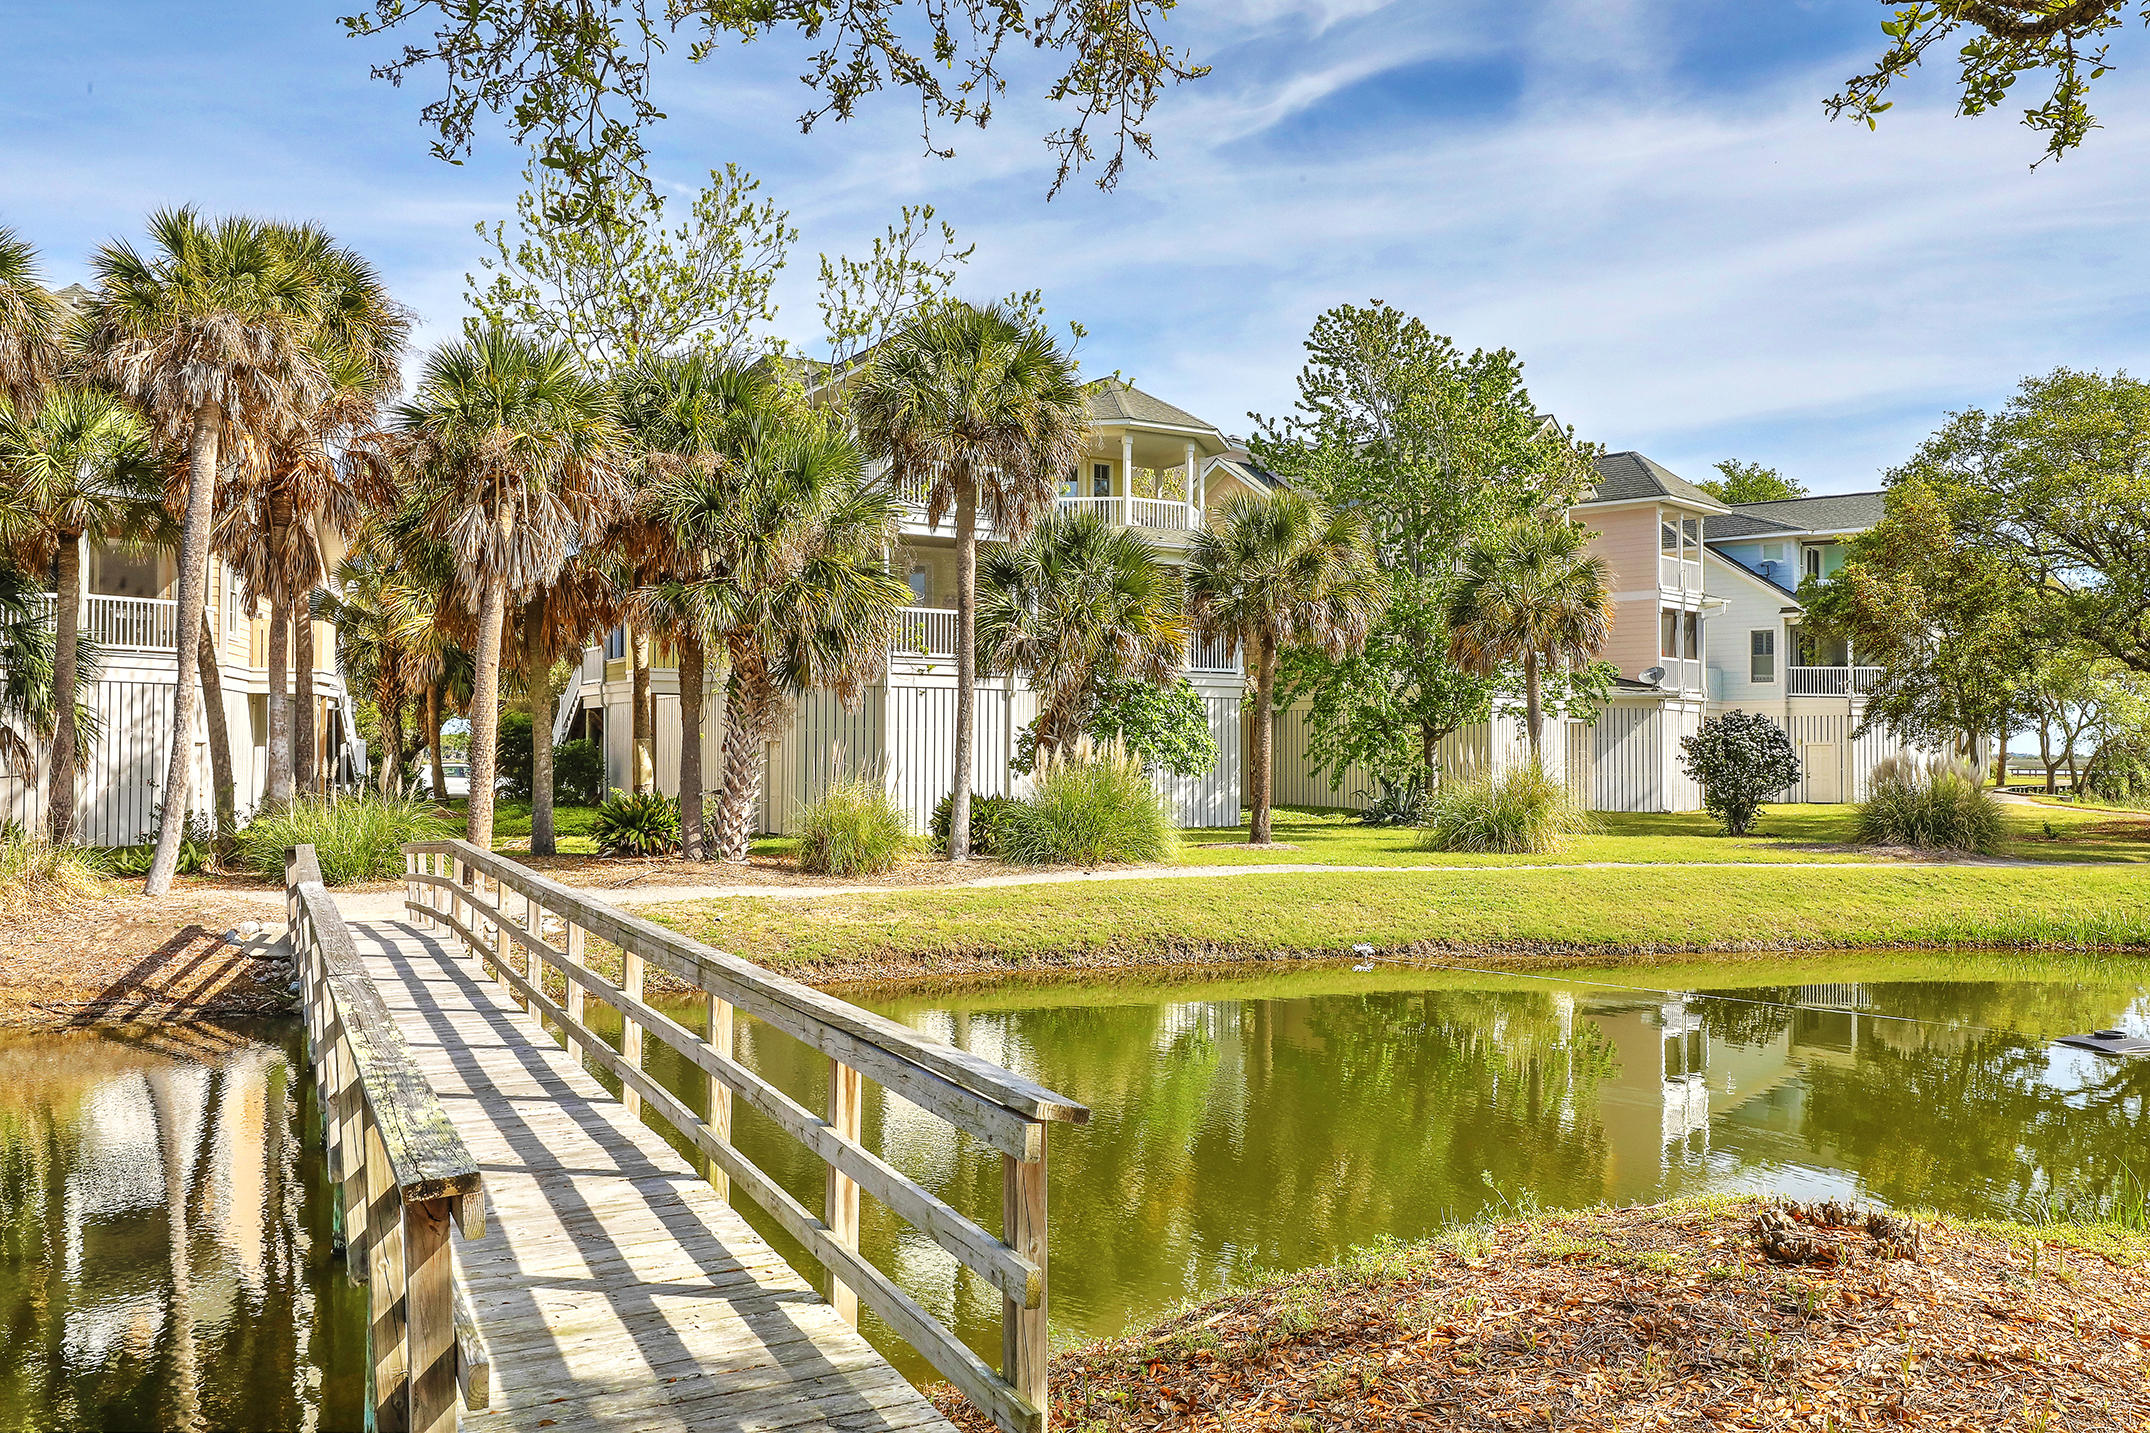 Palmetto Pointe Homes For Sale - 1631 Folly Creek, Charleston, SC - 15